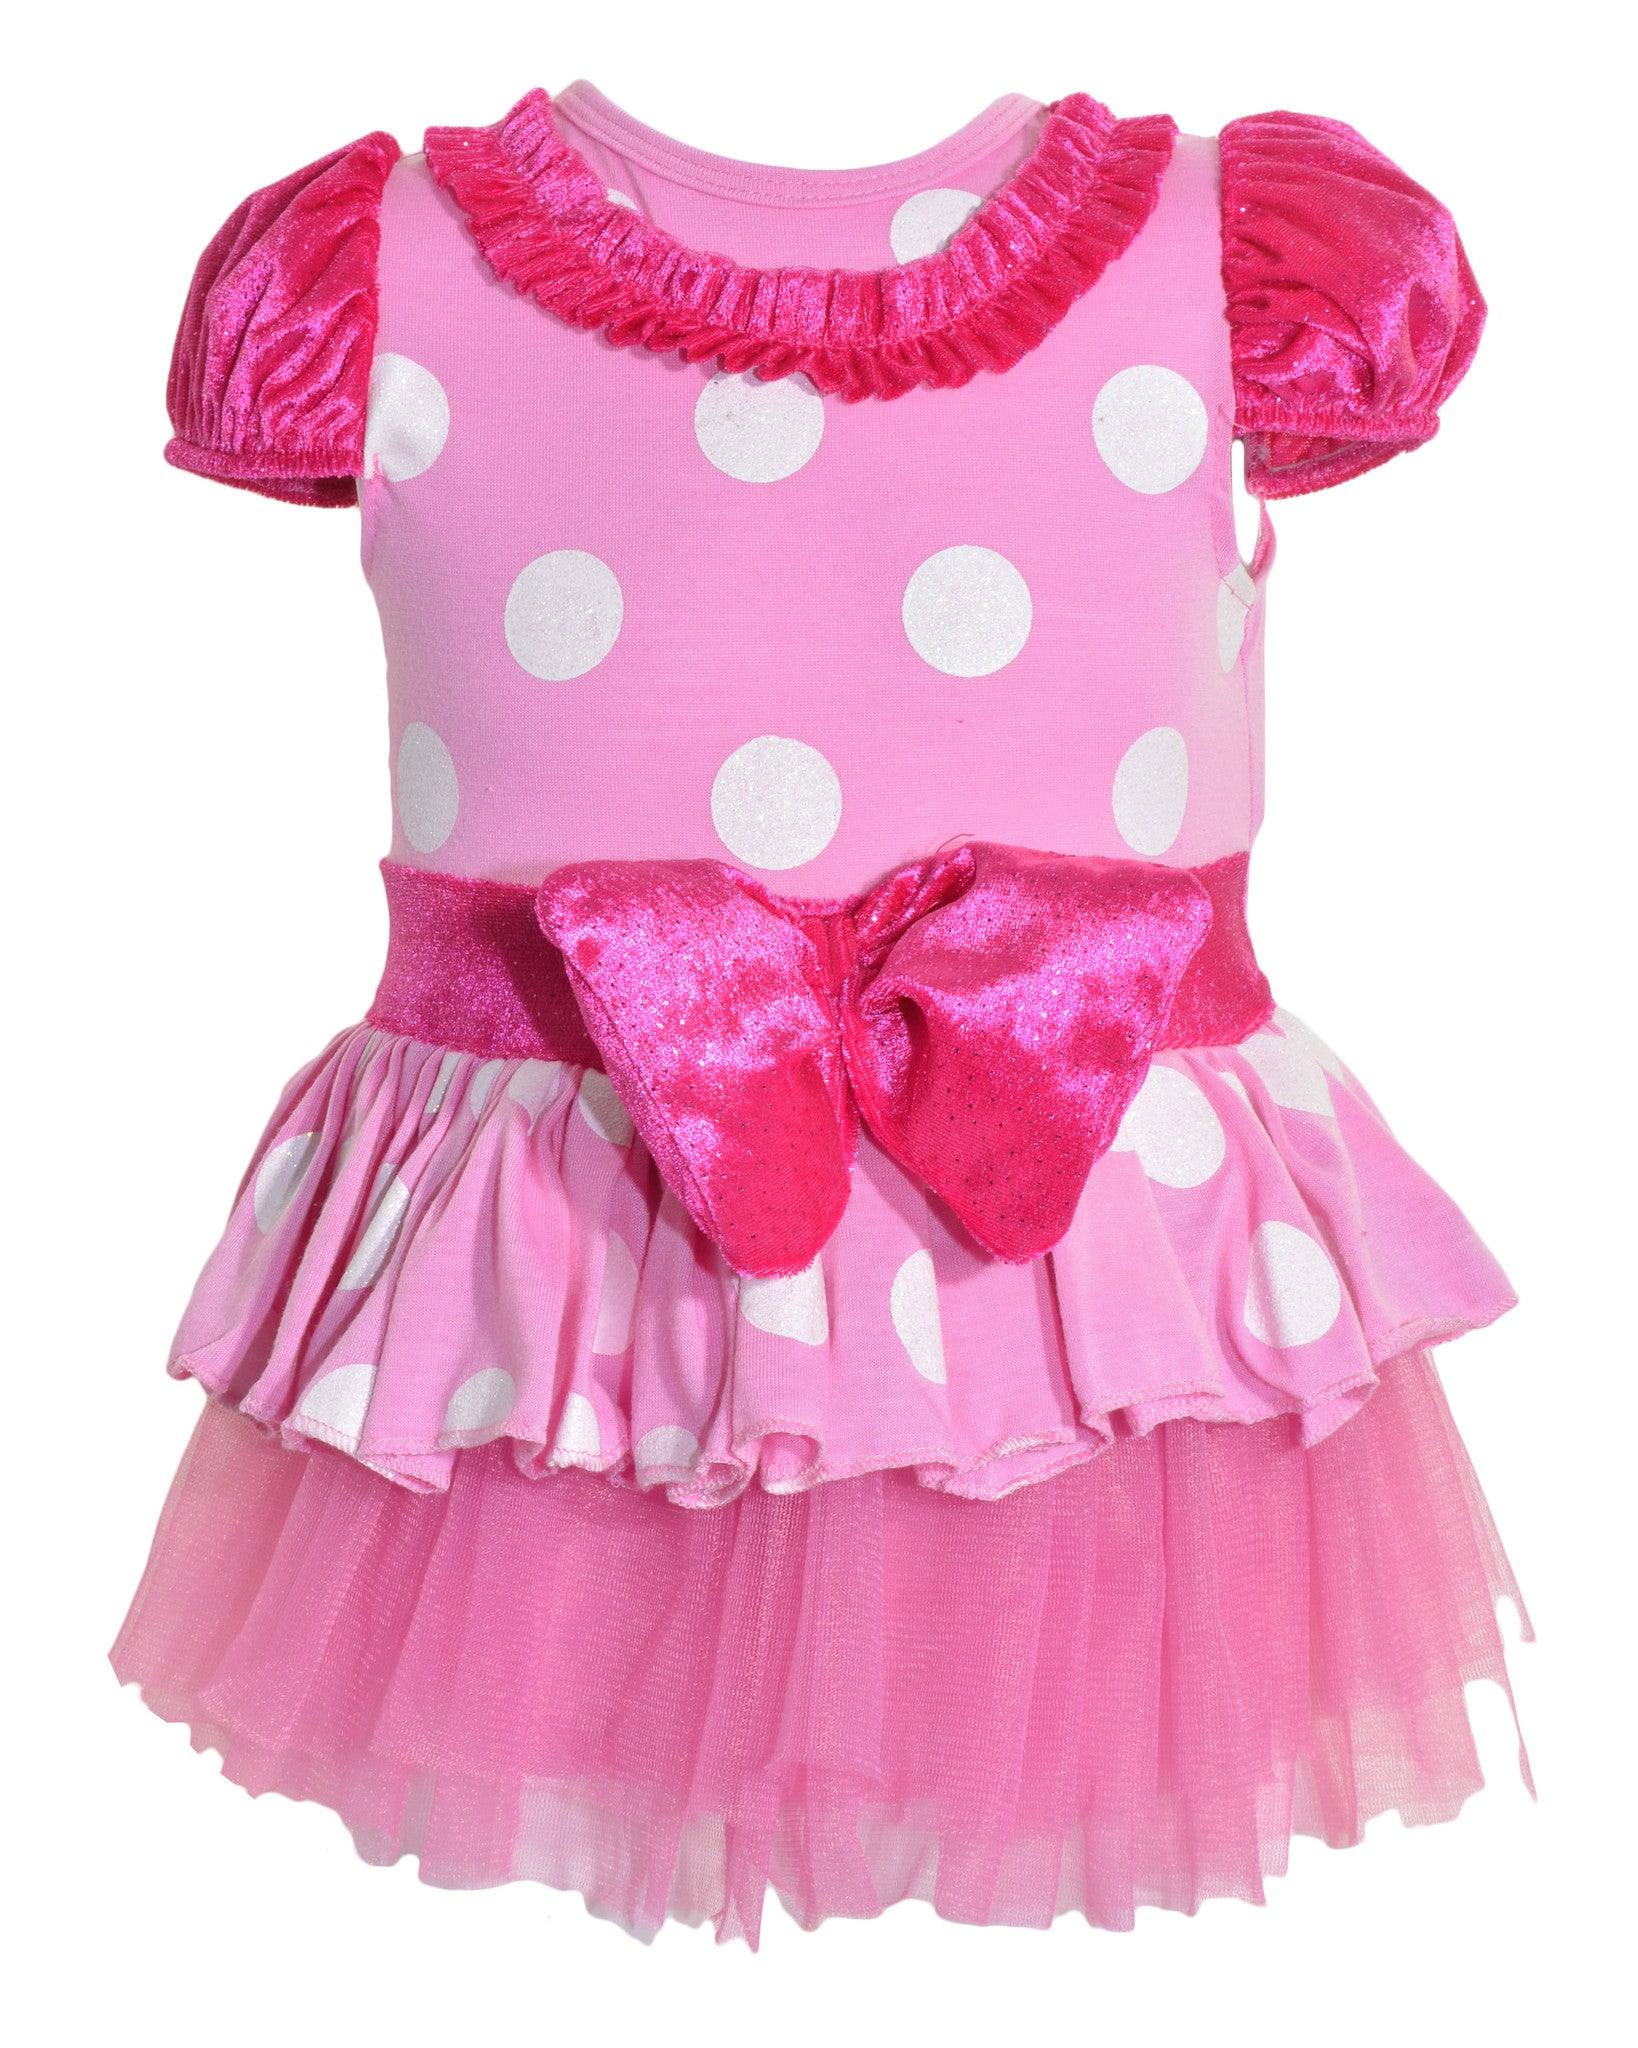 Disguise Costumes Pink Minnie Mouse,Costumes,Disguise Costumes - Discount Divas